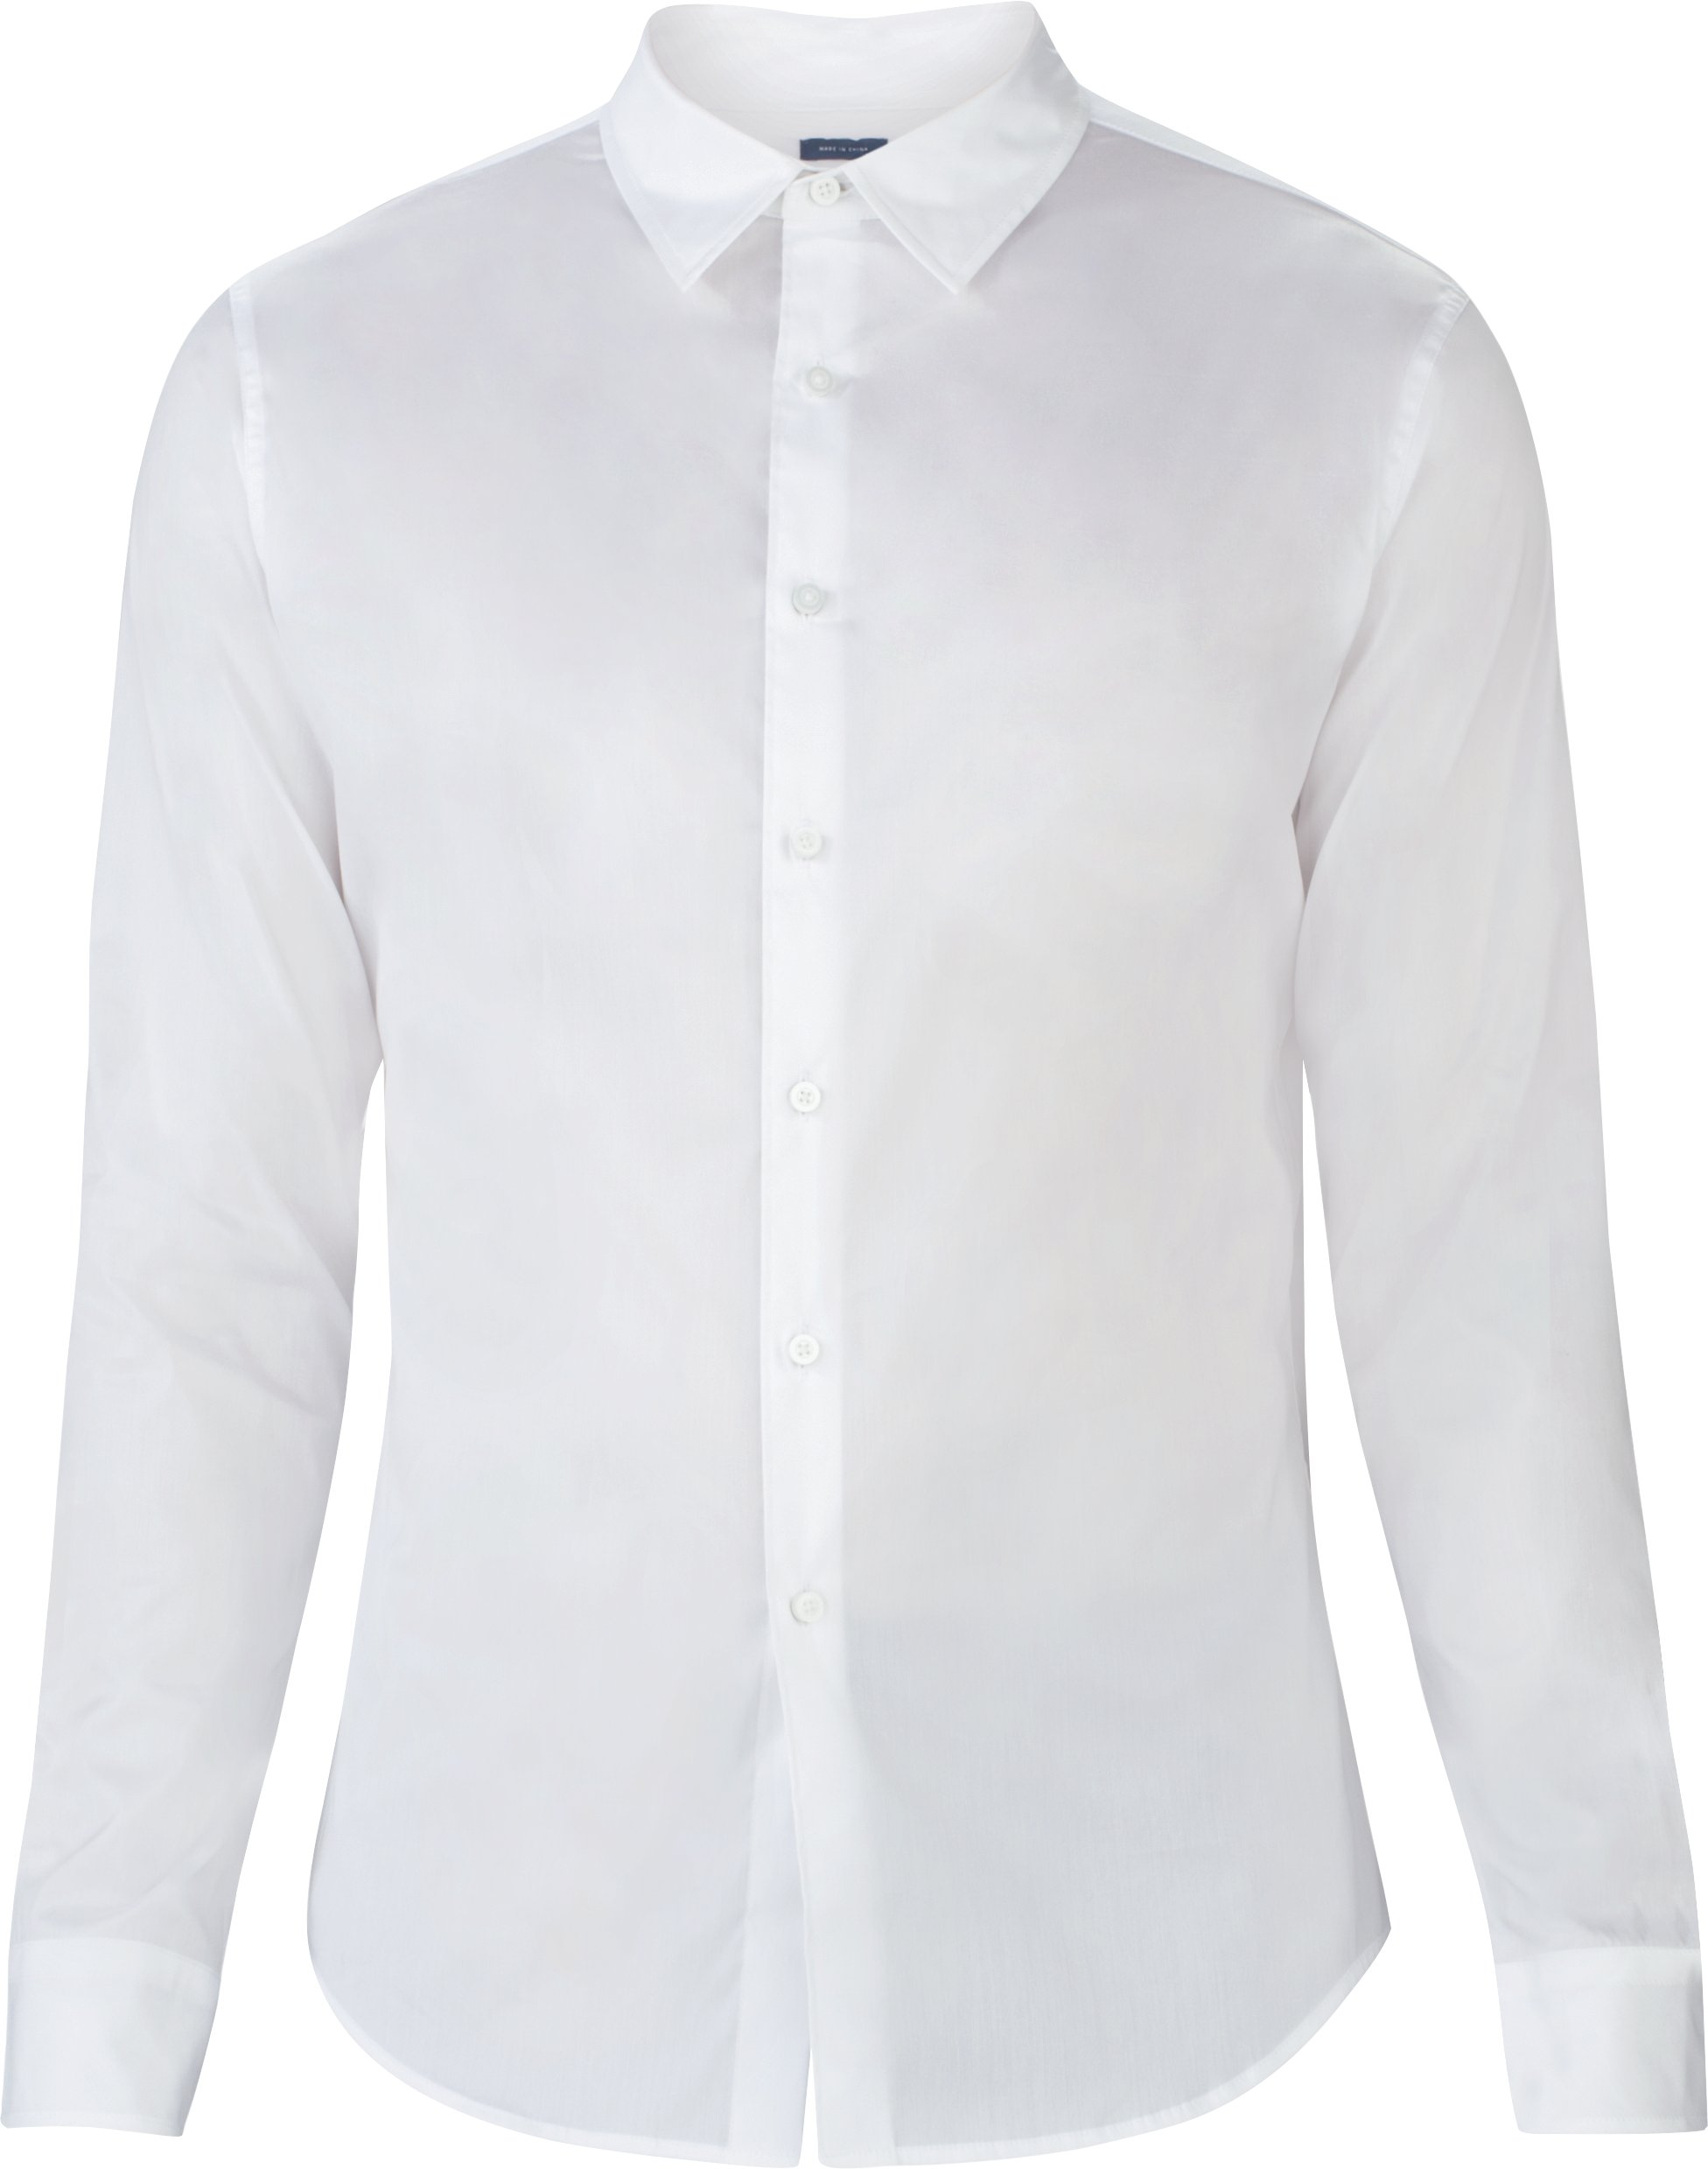 Men's UAS Draftday Solid Dress Shirt, White,